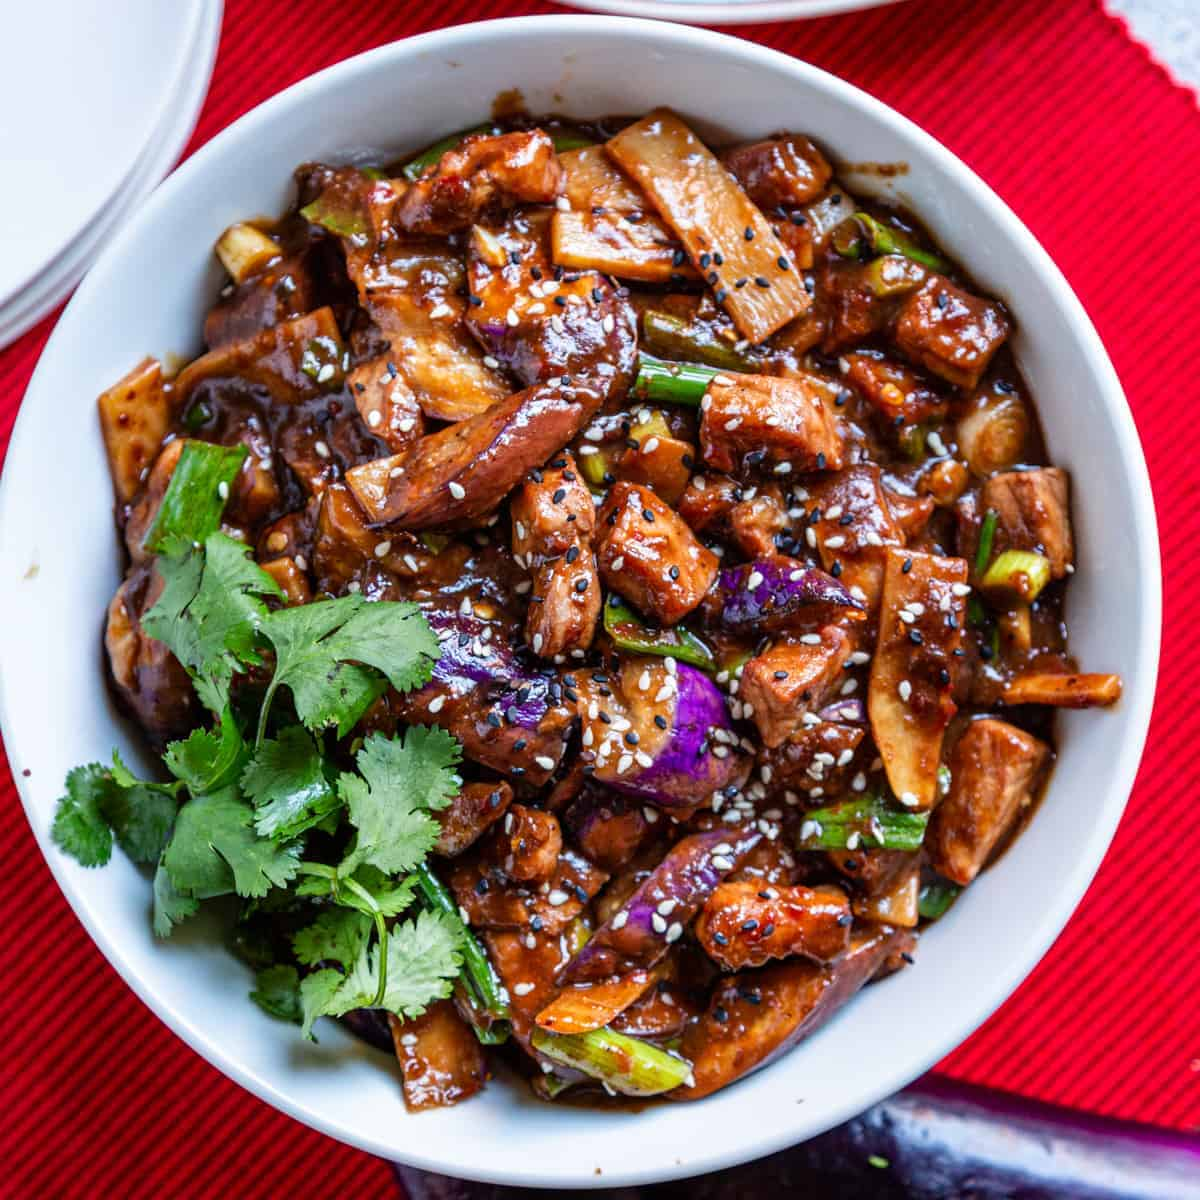 overhead photo of Szechuan Eggplant and Pork Stir Fry in bowl on red placemat